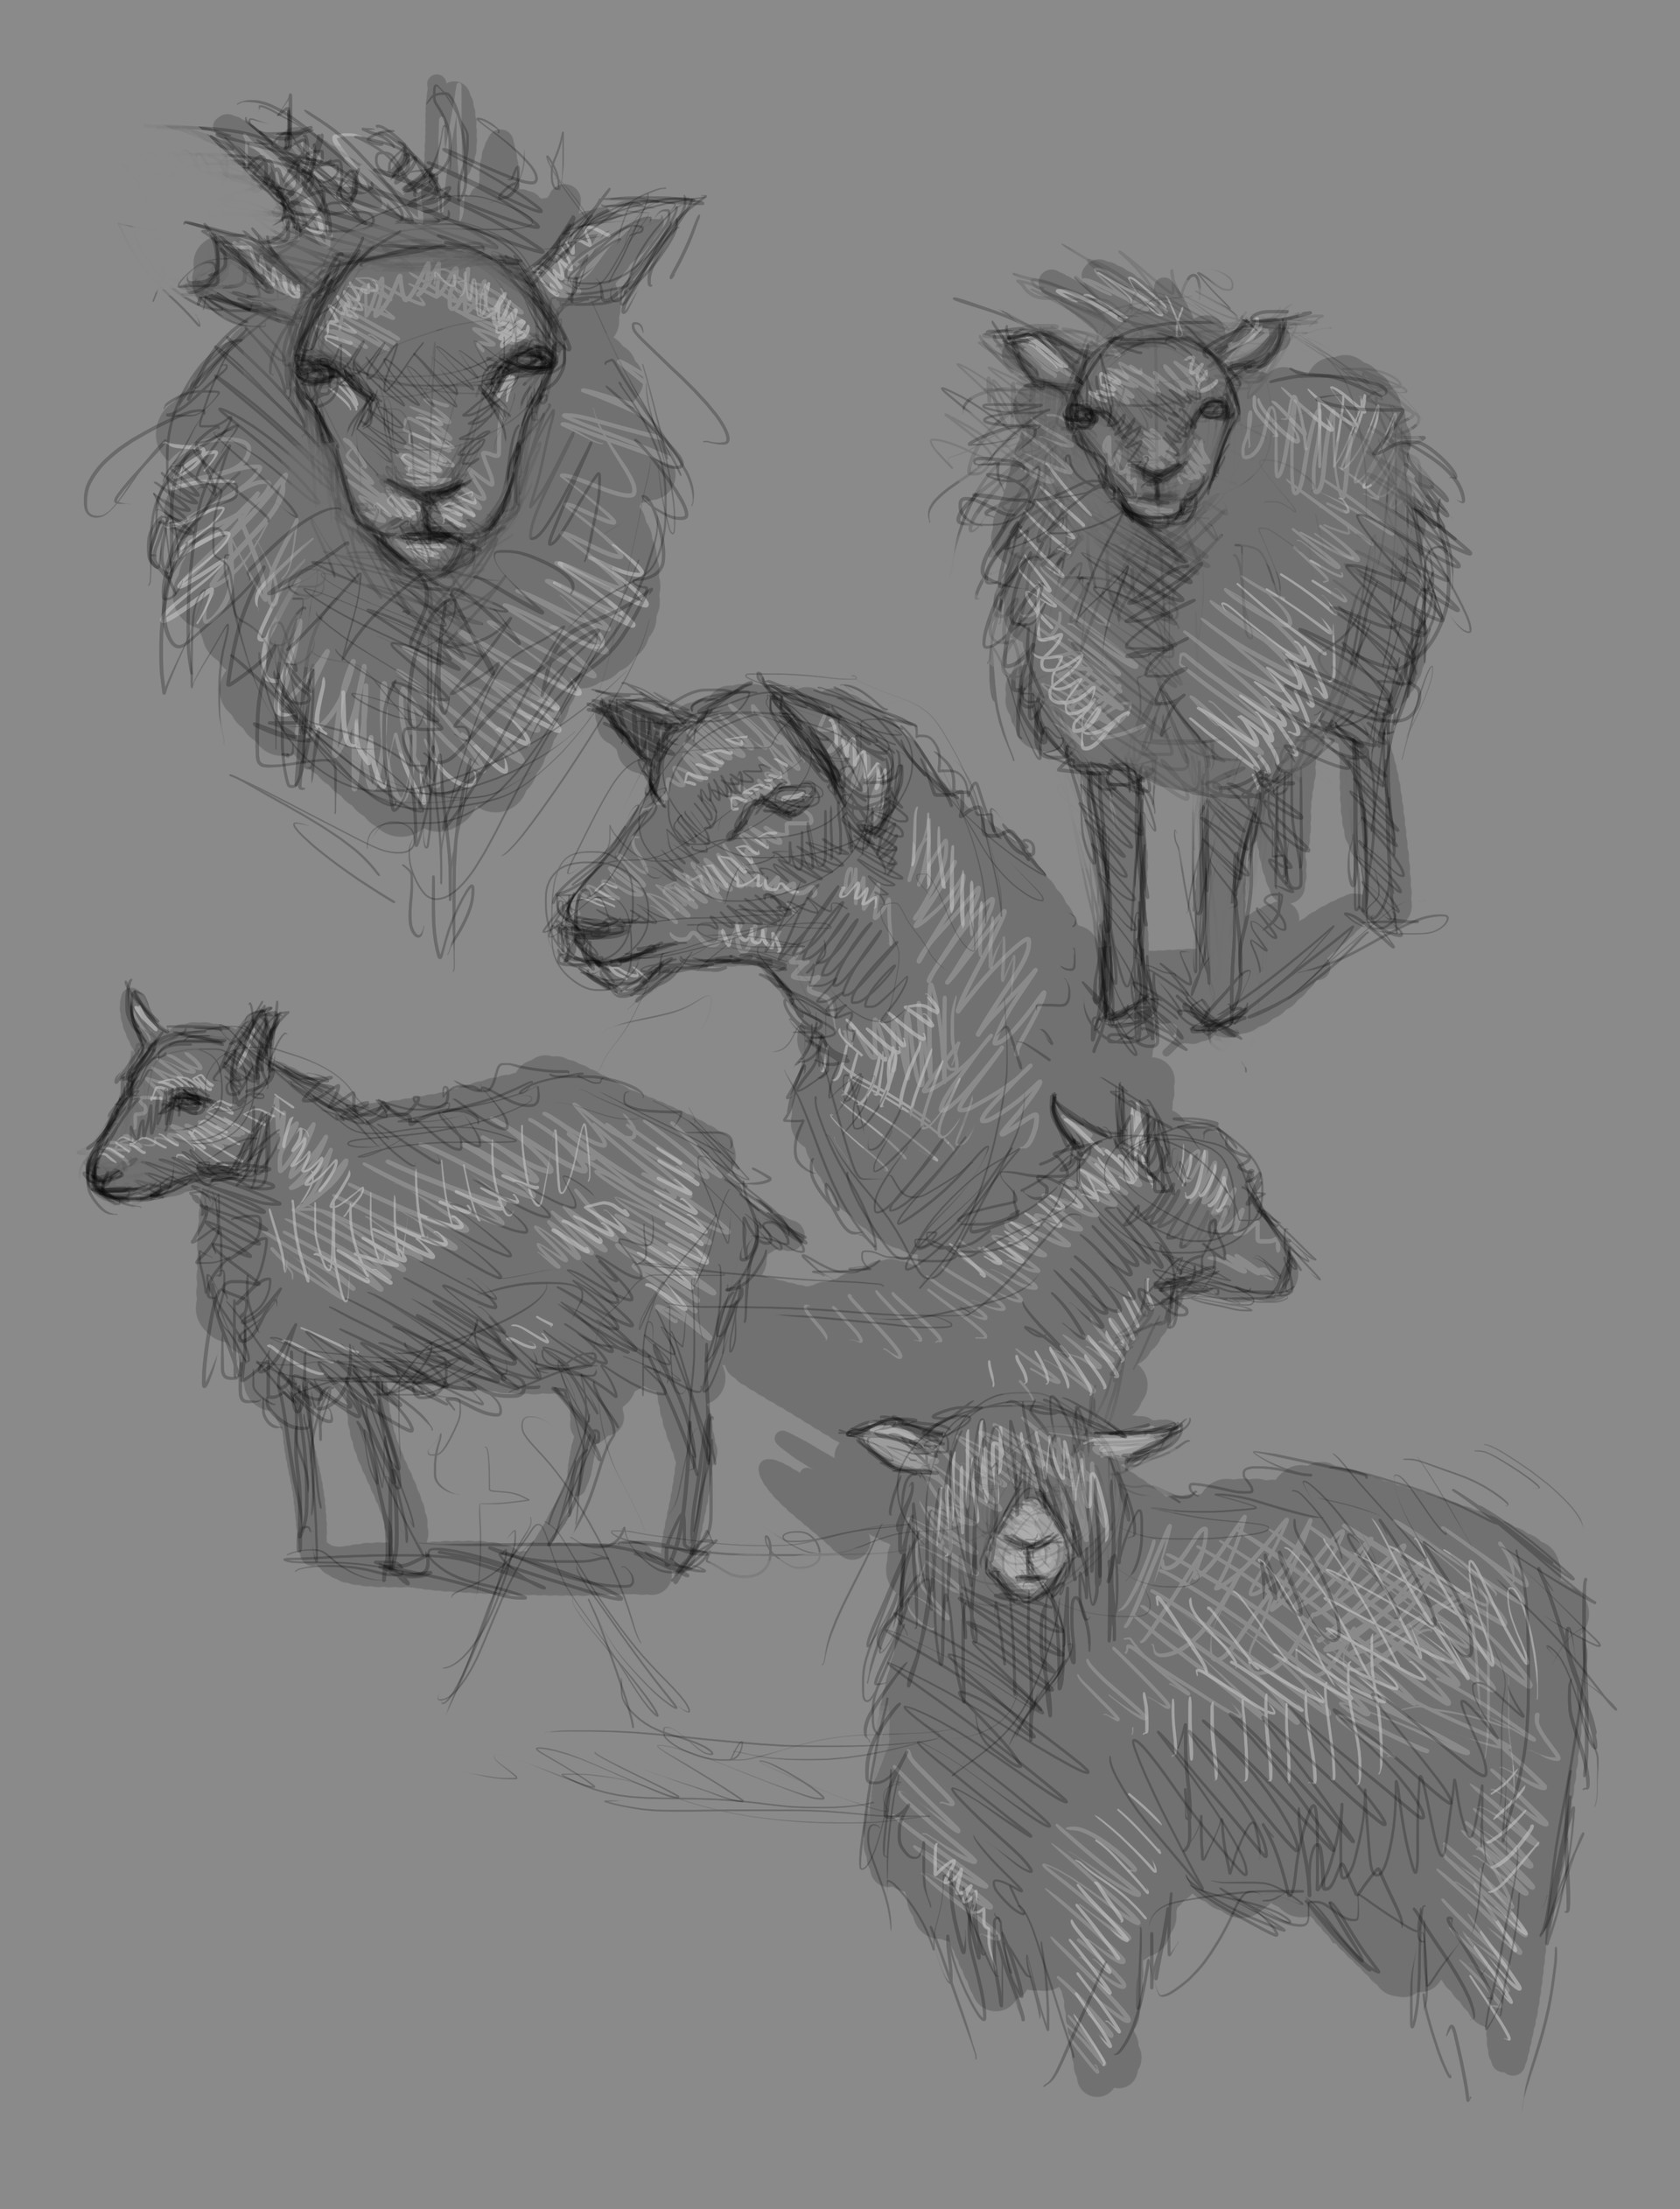 Teodora dimova sheepstudies